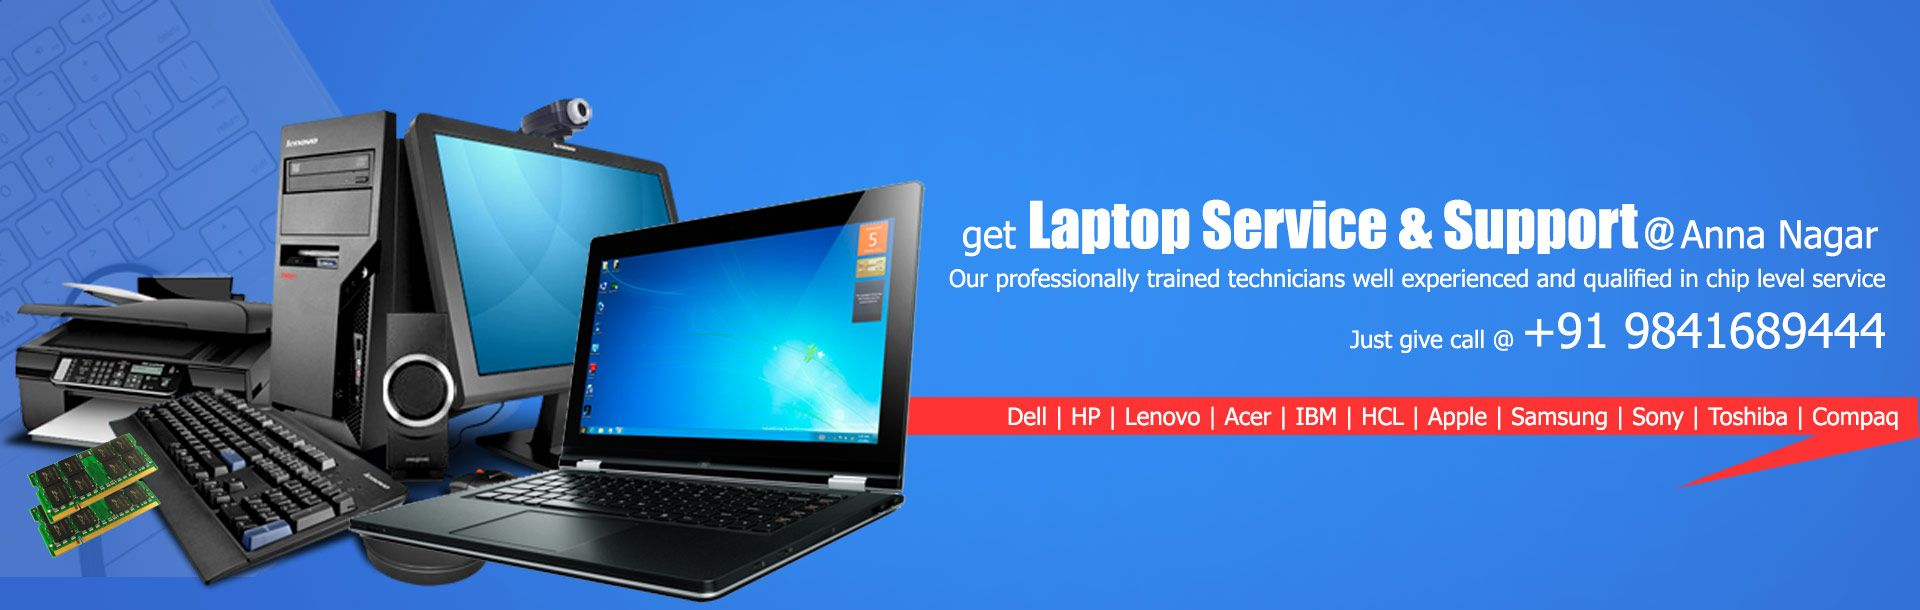 Hp Laptop Service Center In Chennai - Hp Service Center In